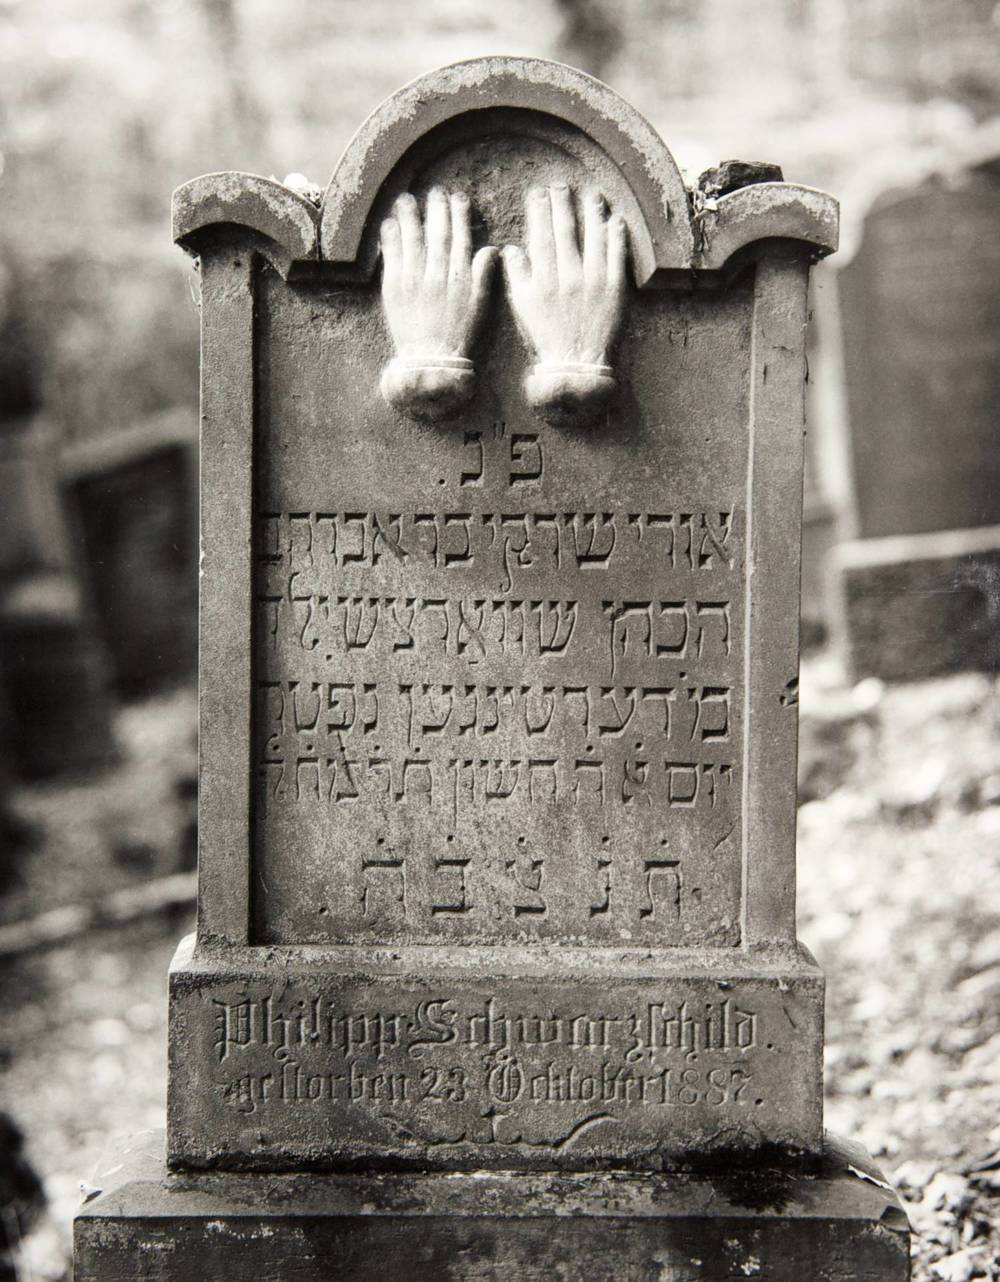 Hands (Infant's Gravestone, Wertheim, Germany)